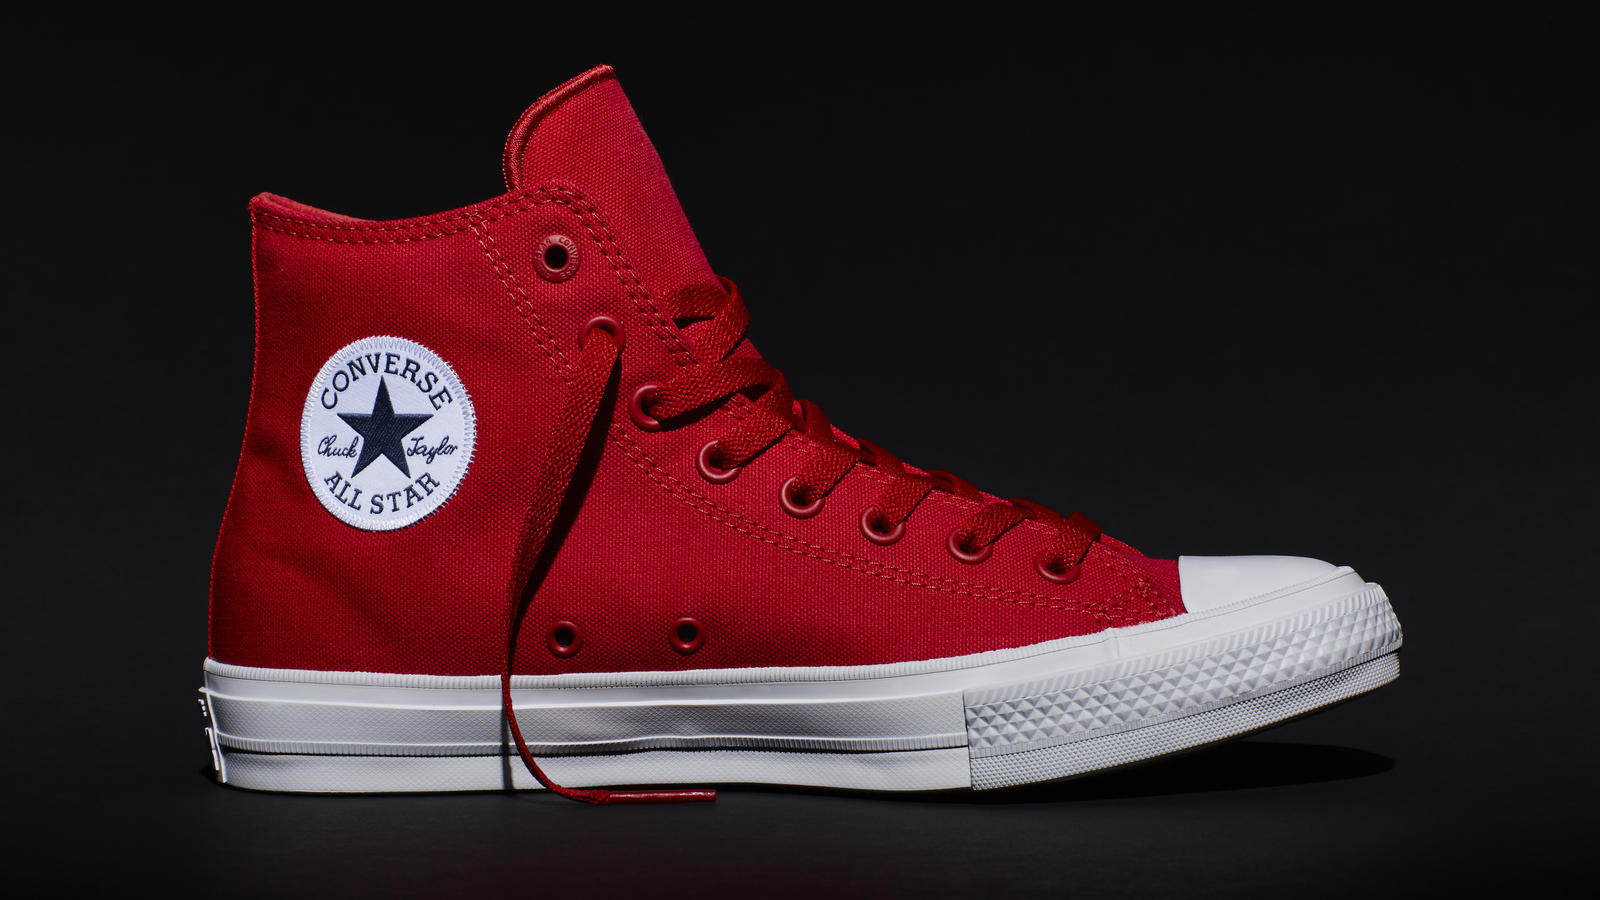 f3a55cd1e905 CONVERSE USHERS IN NEW ERA WITH GROUND-BREAKING CHUCK TAYLOR ALL ...